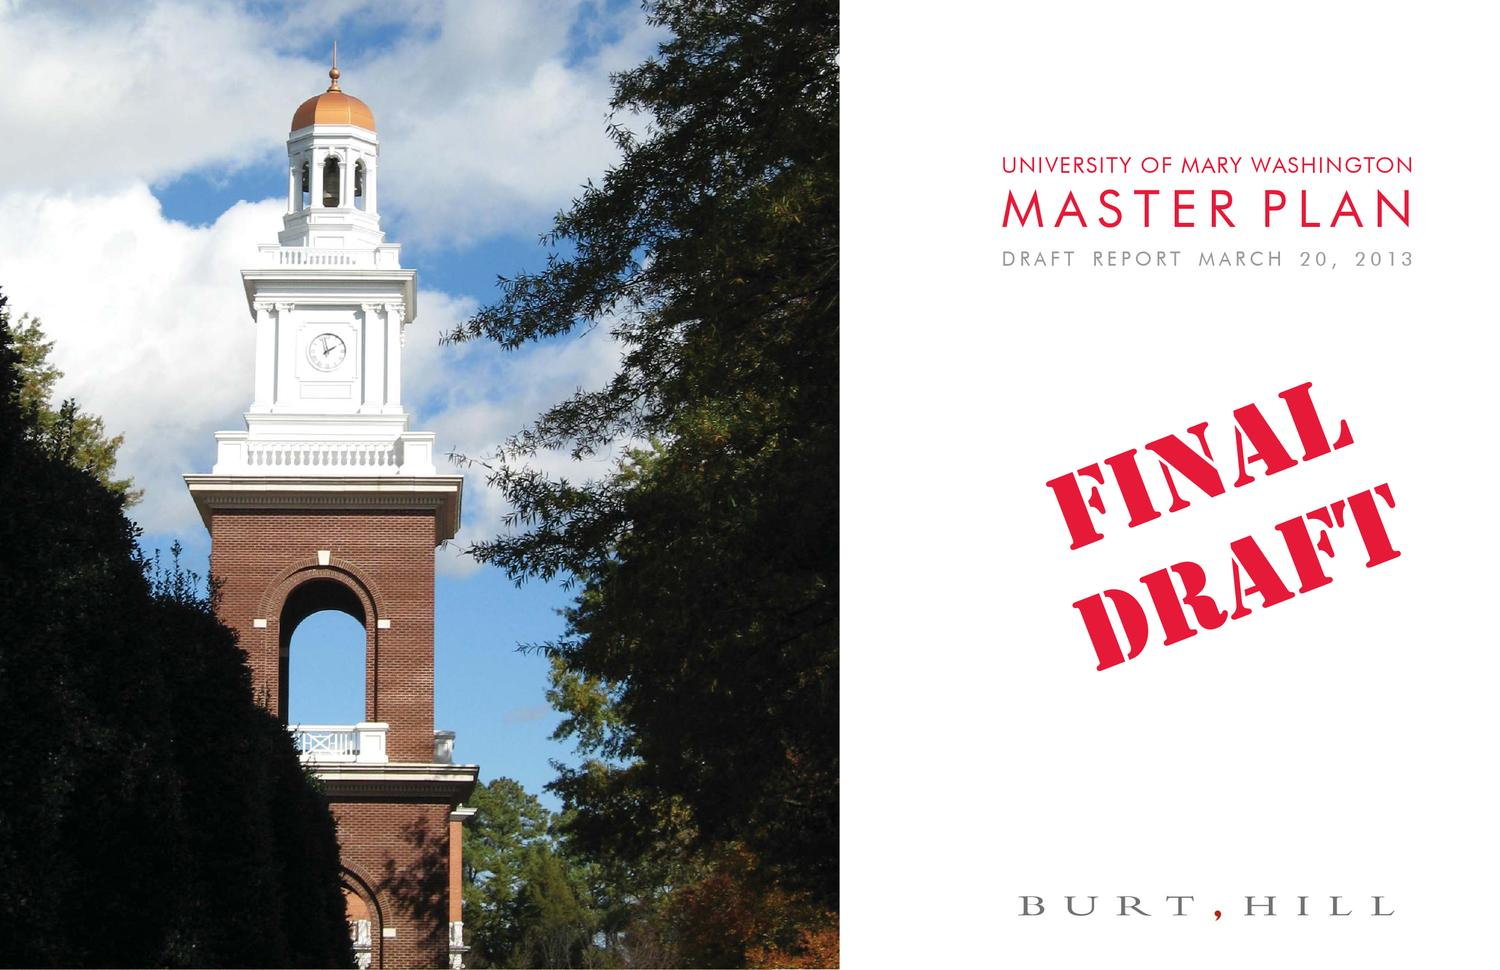 UMW Master Plan by University of Mary Washington issuu